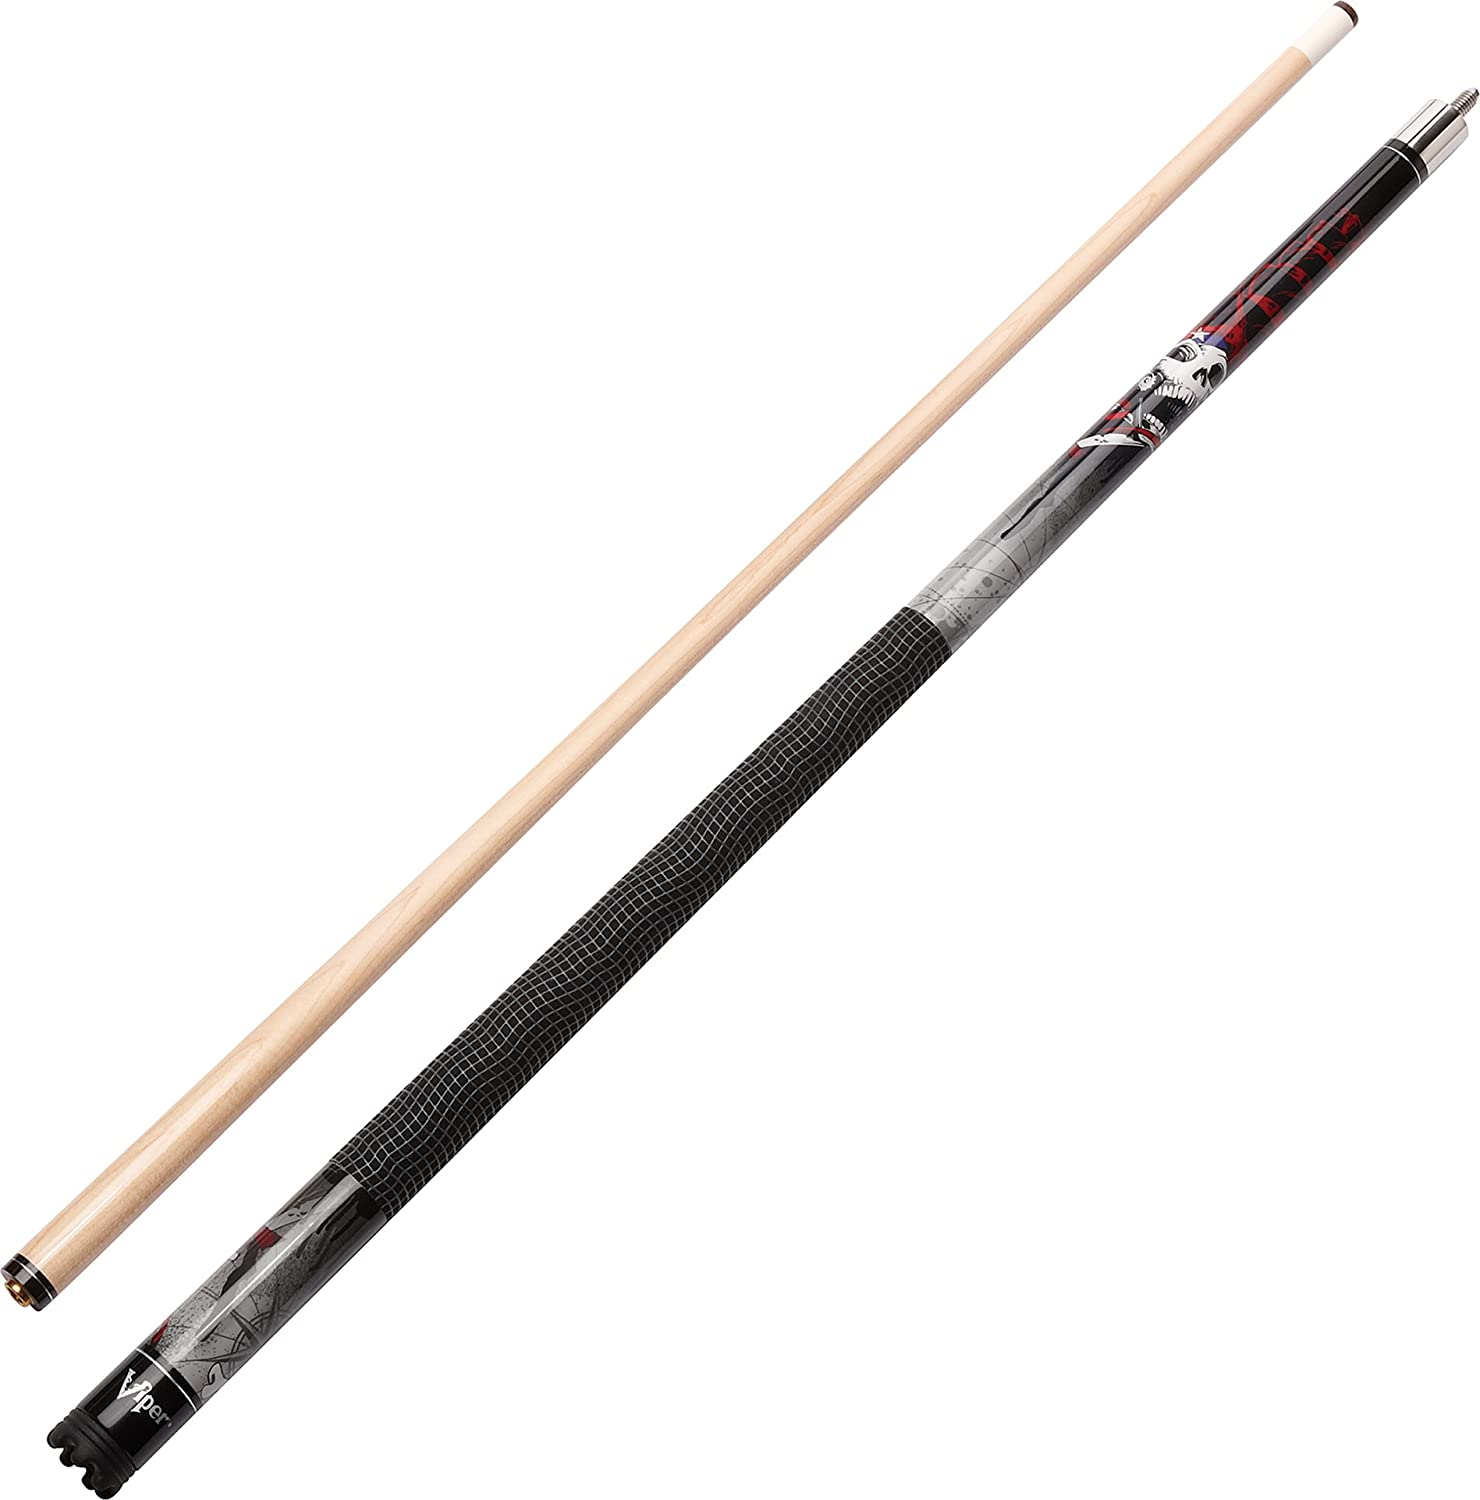 Viper Revolution 58 2-Piece Billiard/Pool Cue, Outlaw 50-0204-18-Parent